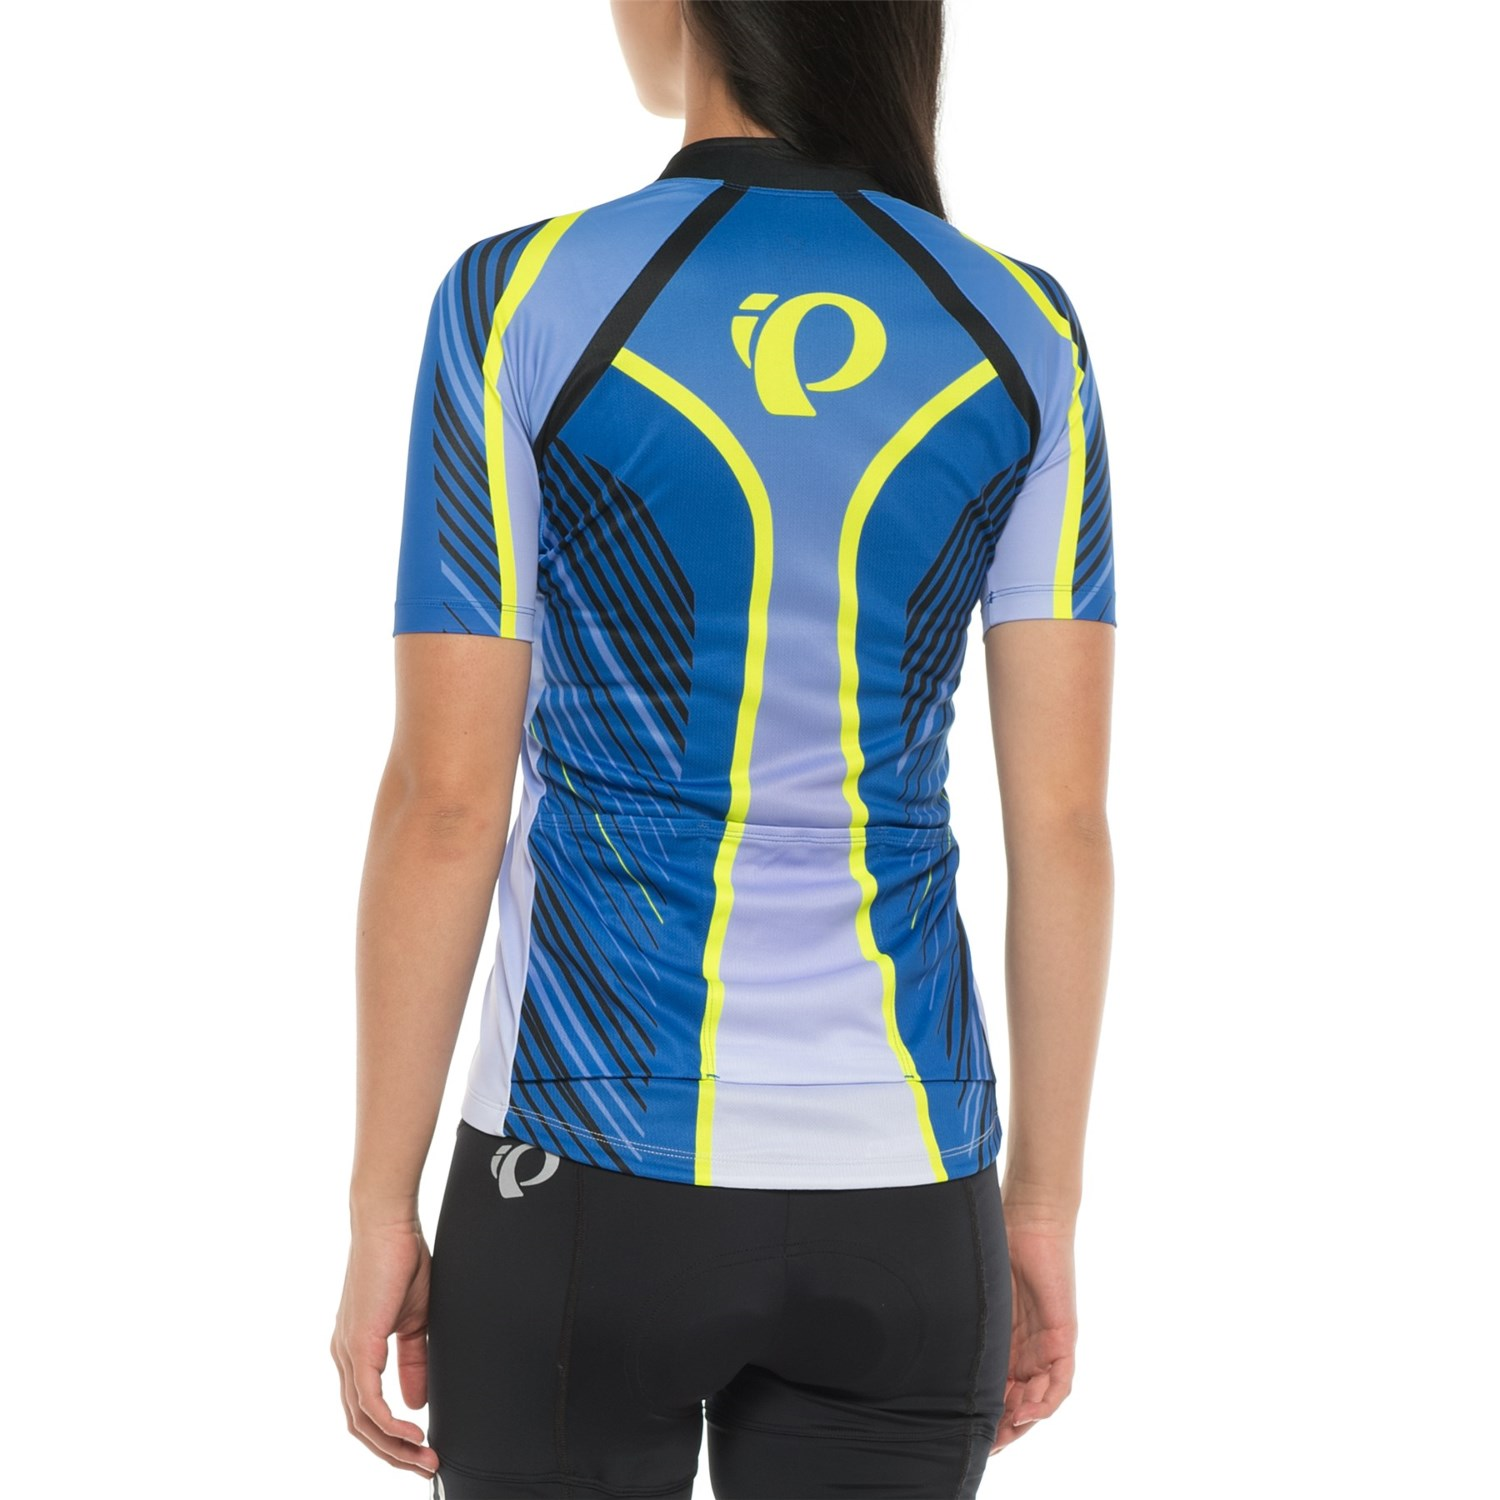 55021c78d Pearl Izumi ELITE Pursuit LTD Cycling Jersey (For Women) - Save 58%